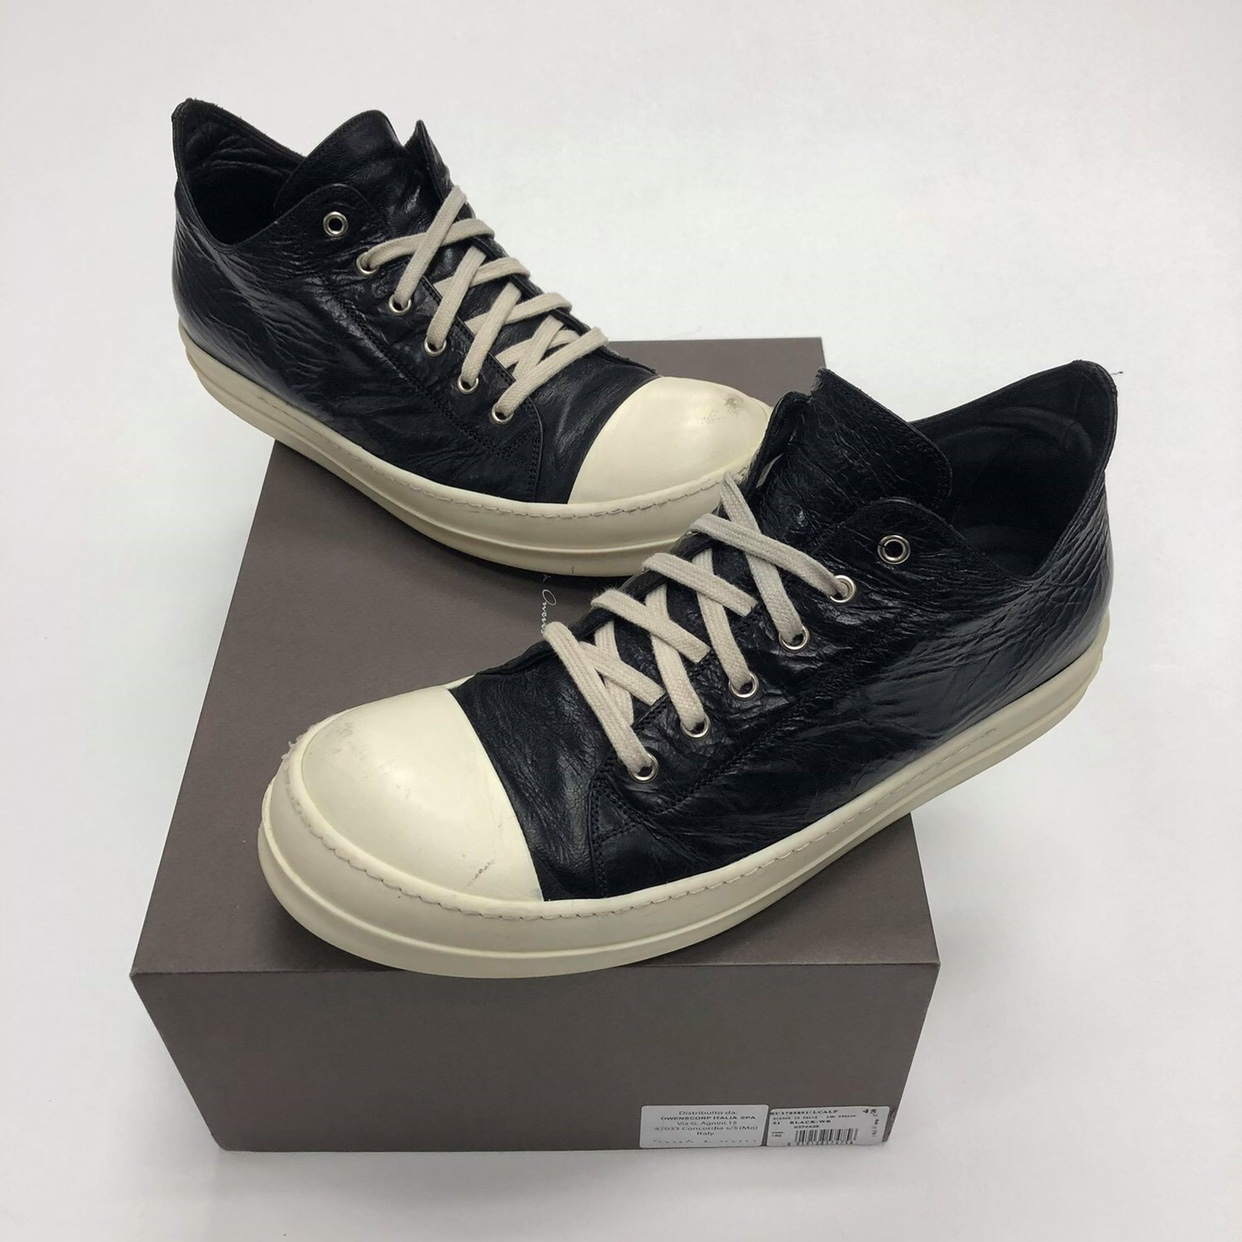 S/S 2017 Rick Owens Low Cracked Leather